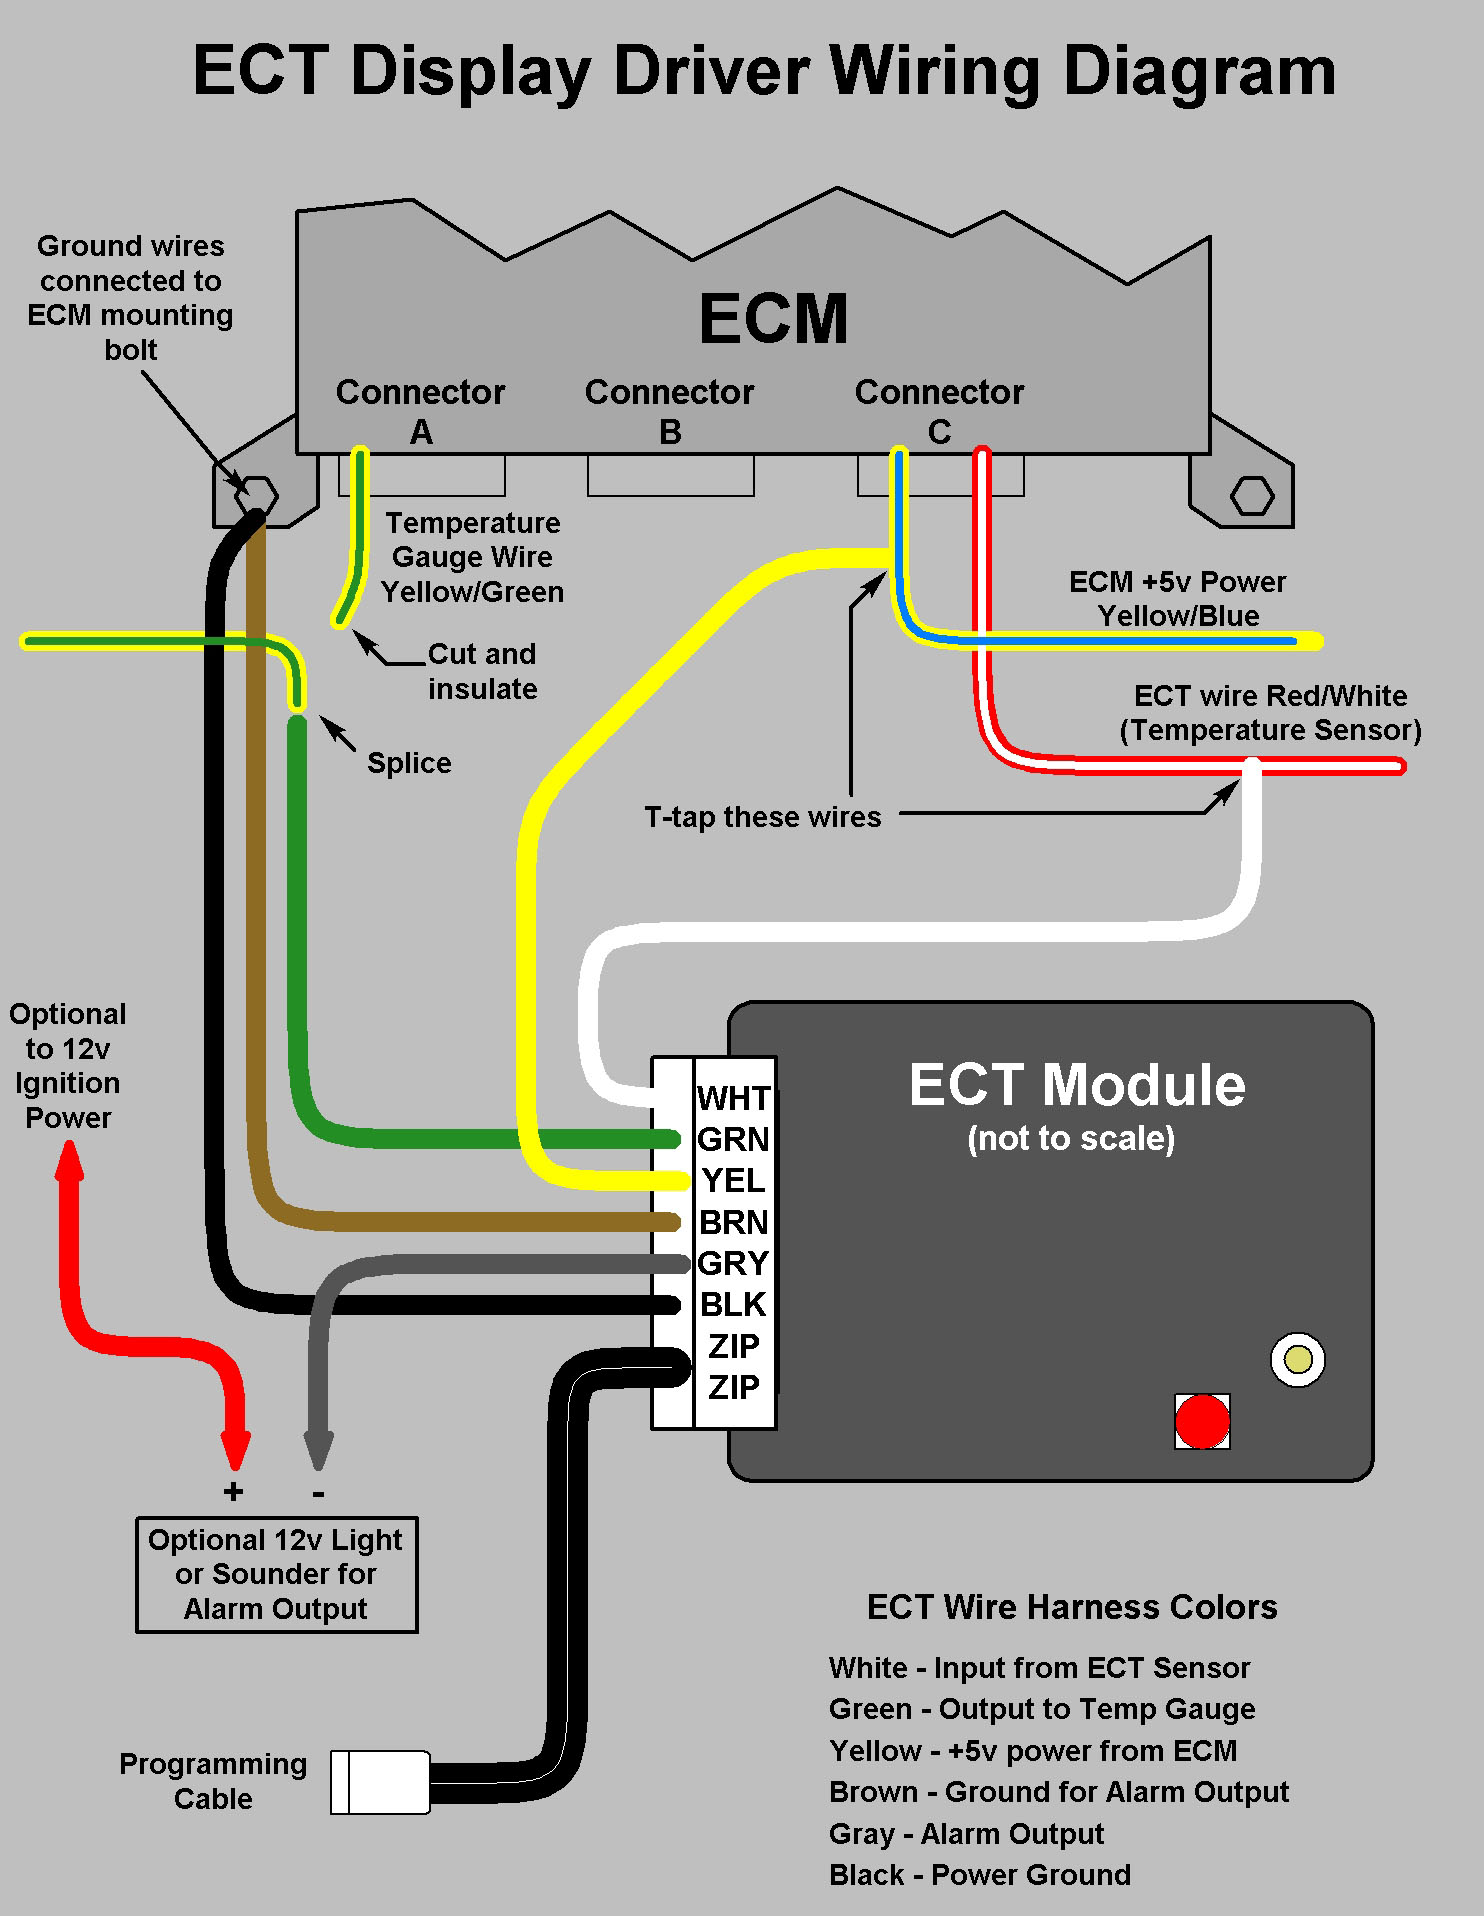 ECT wiring diagram ems wiring diagram management system \u2022 wiring diagrams j squared co  at alyssarenee.co